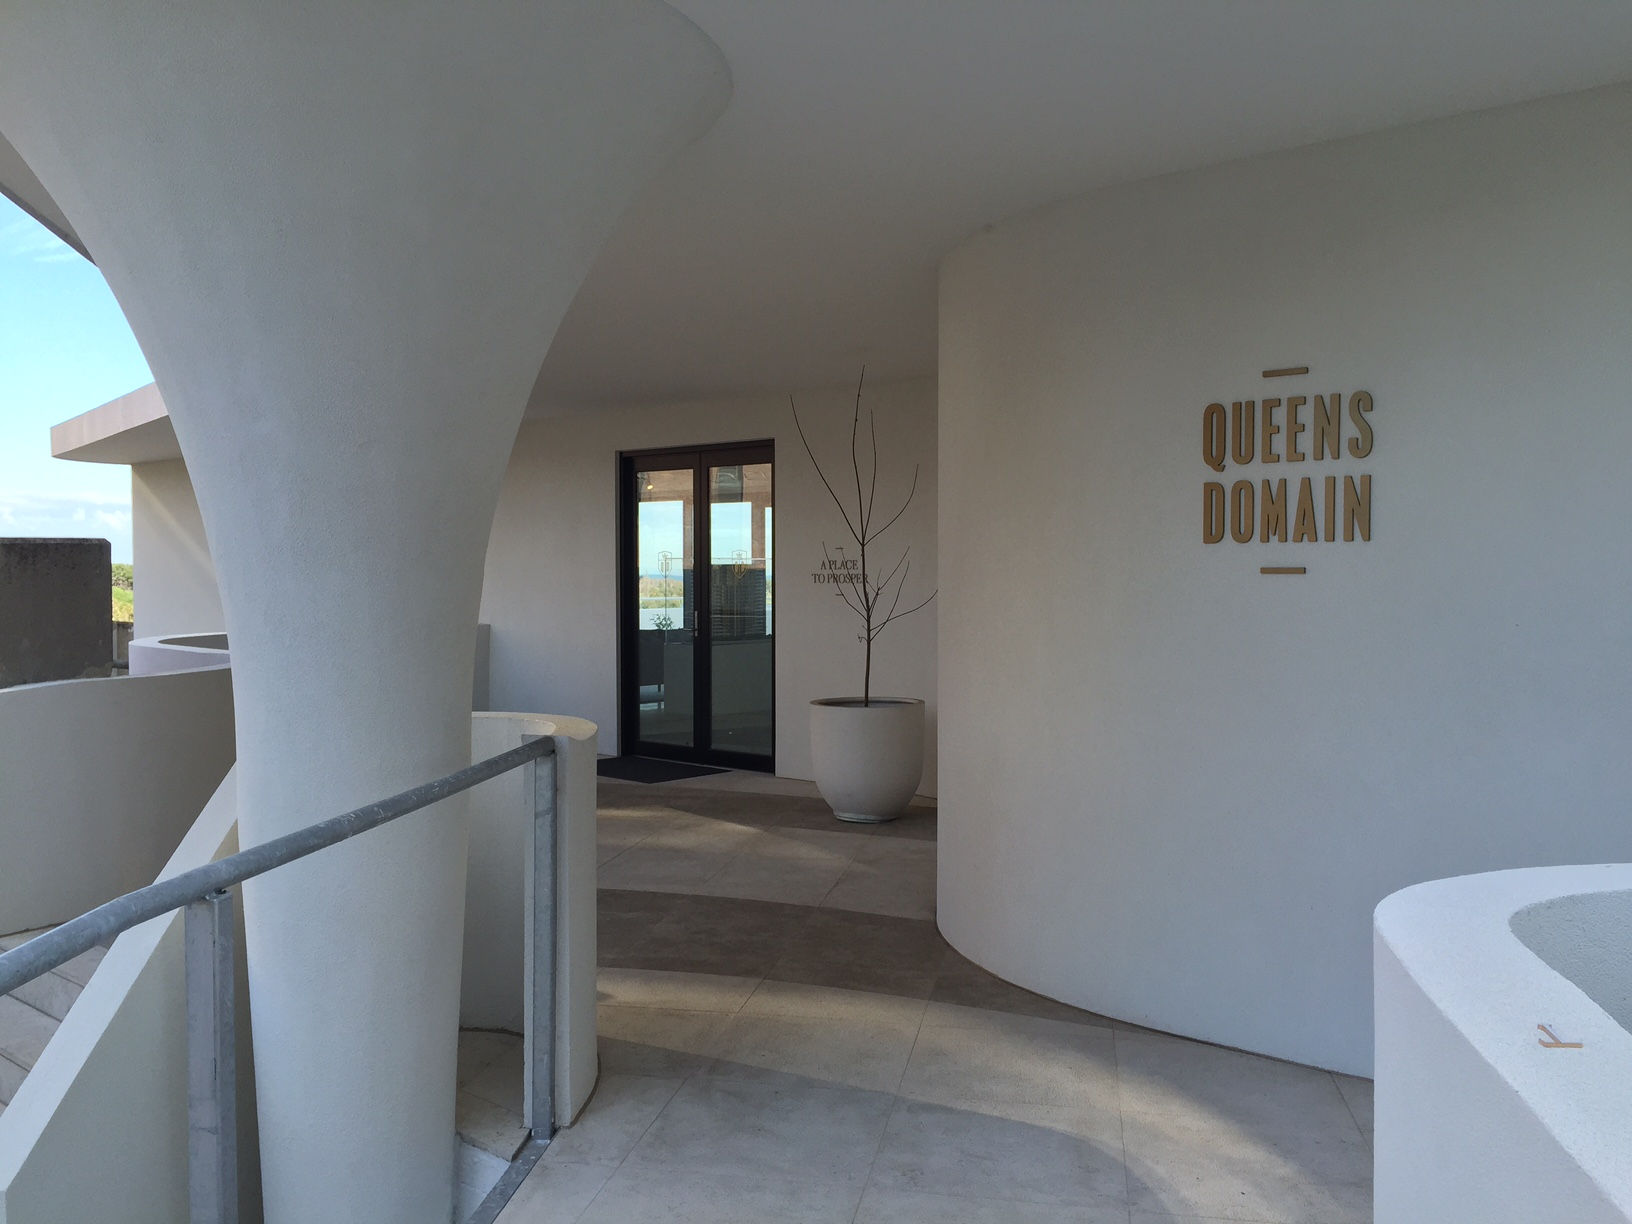 Queens Domain by Savi Communications